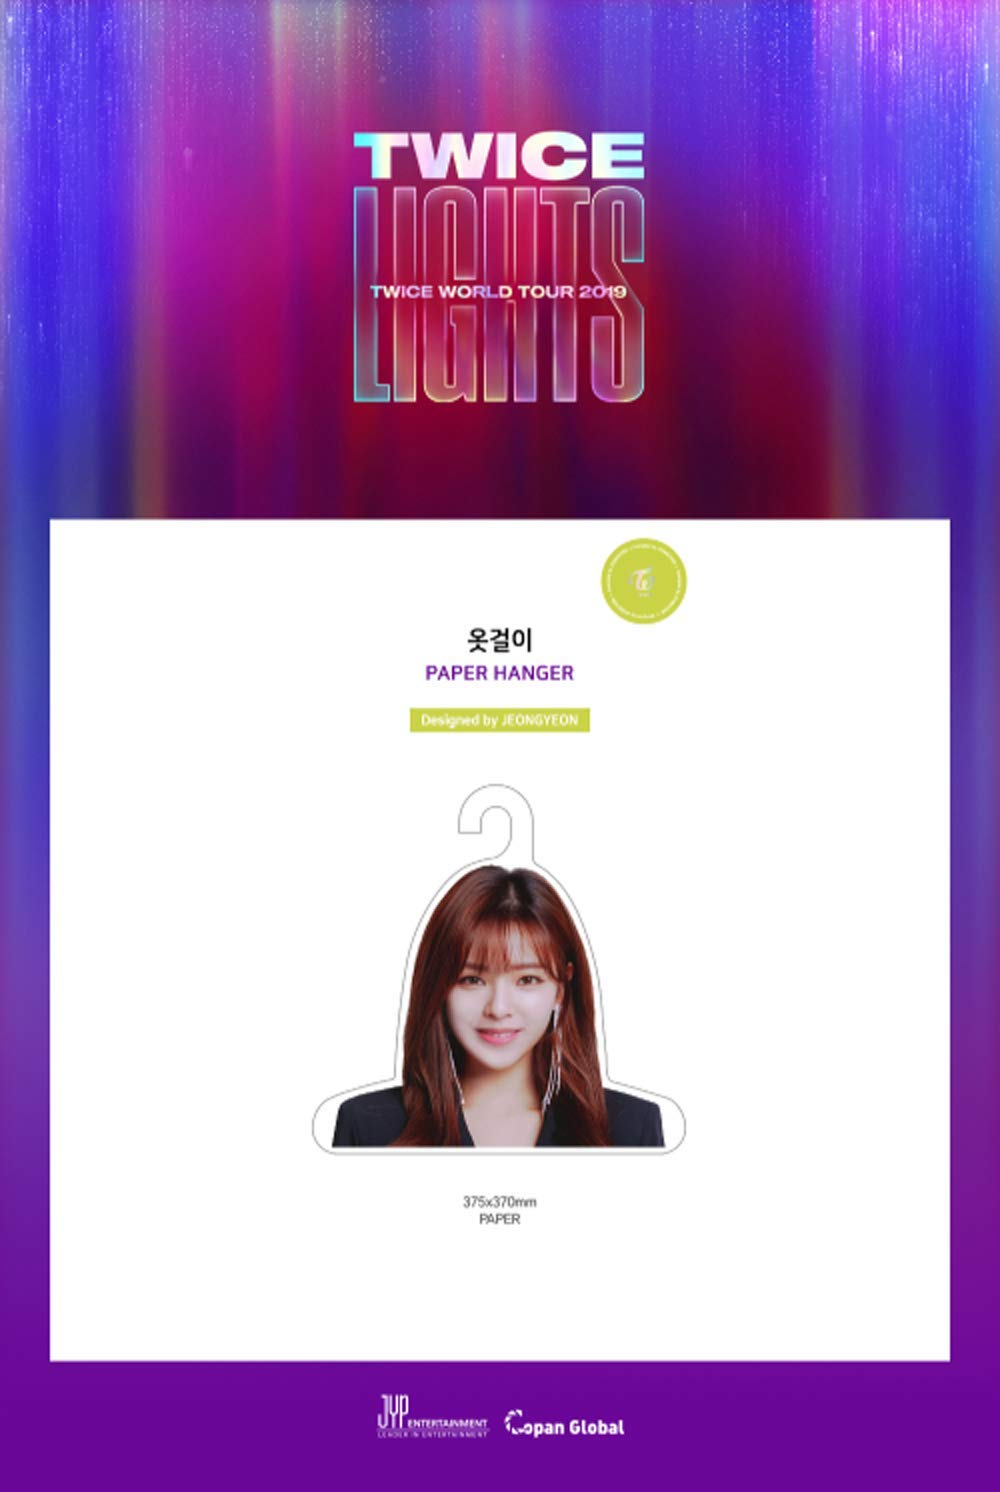 Twice World Tour 2019 Twicelights Official Paper Hanger Jeongyeon